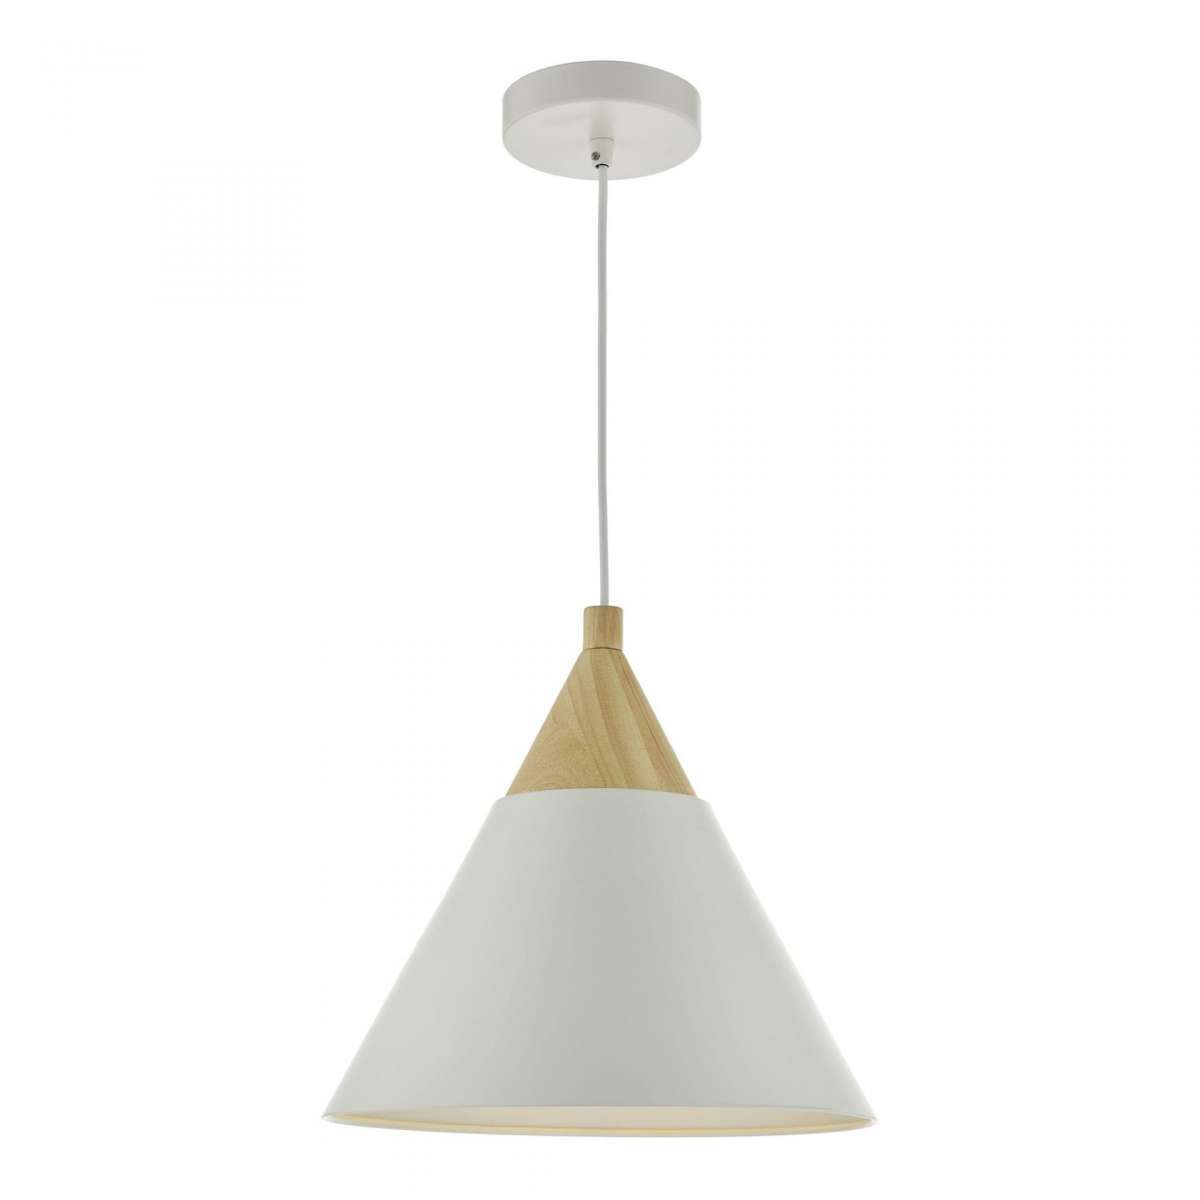 Ilory 1 Light Pendant Ivory And Natural Wood